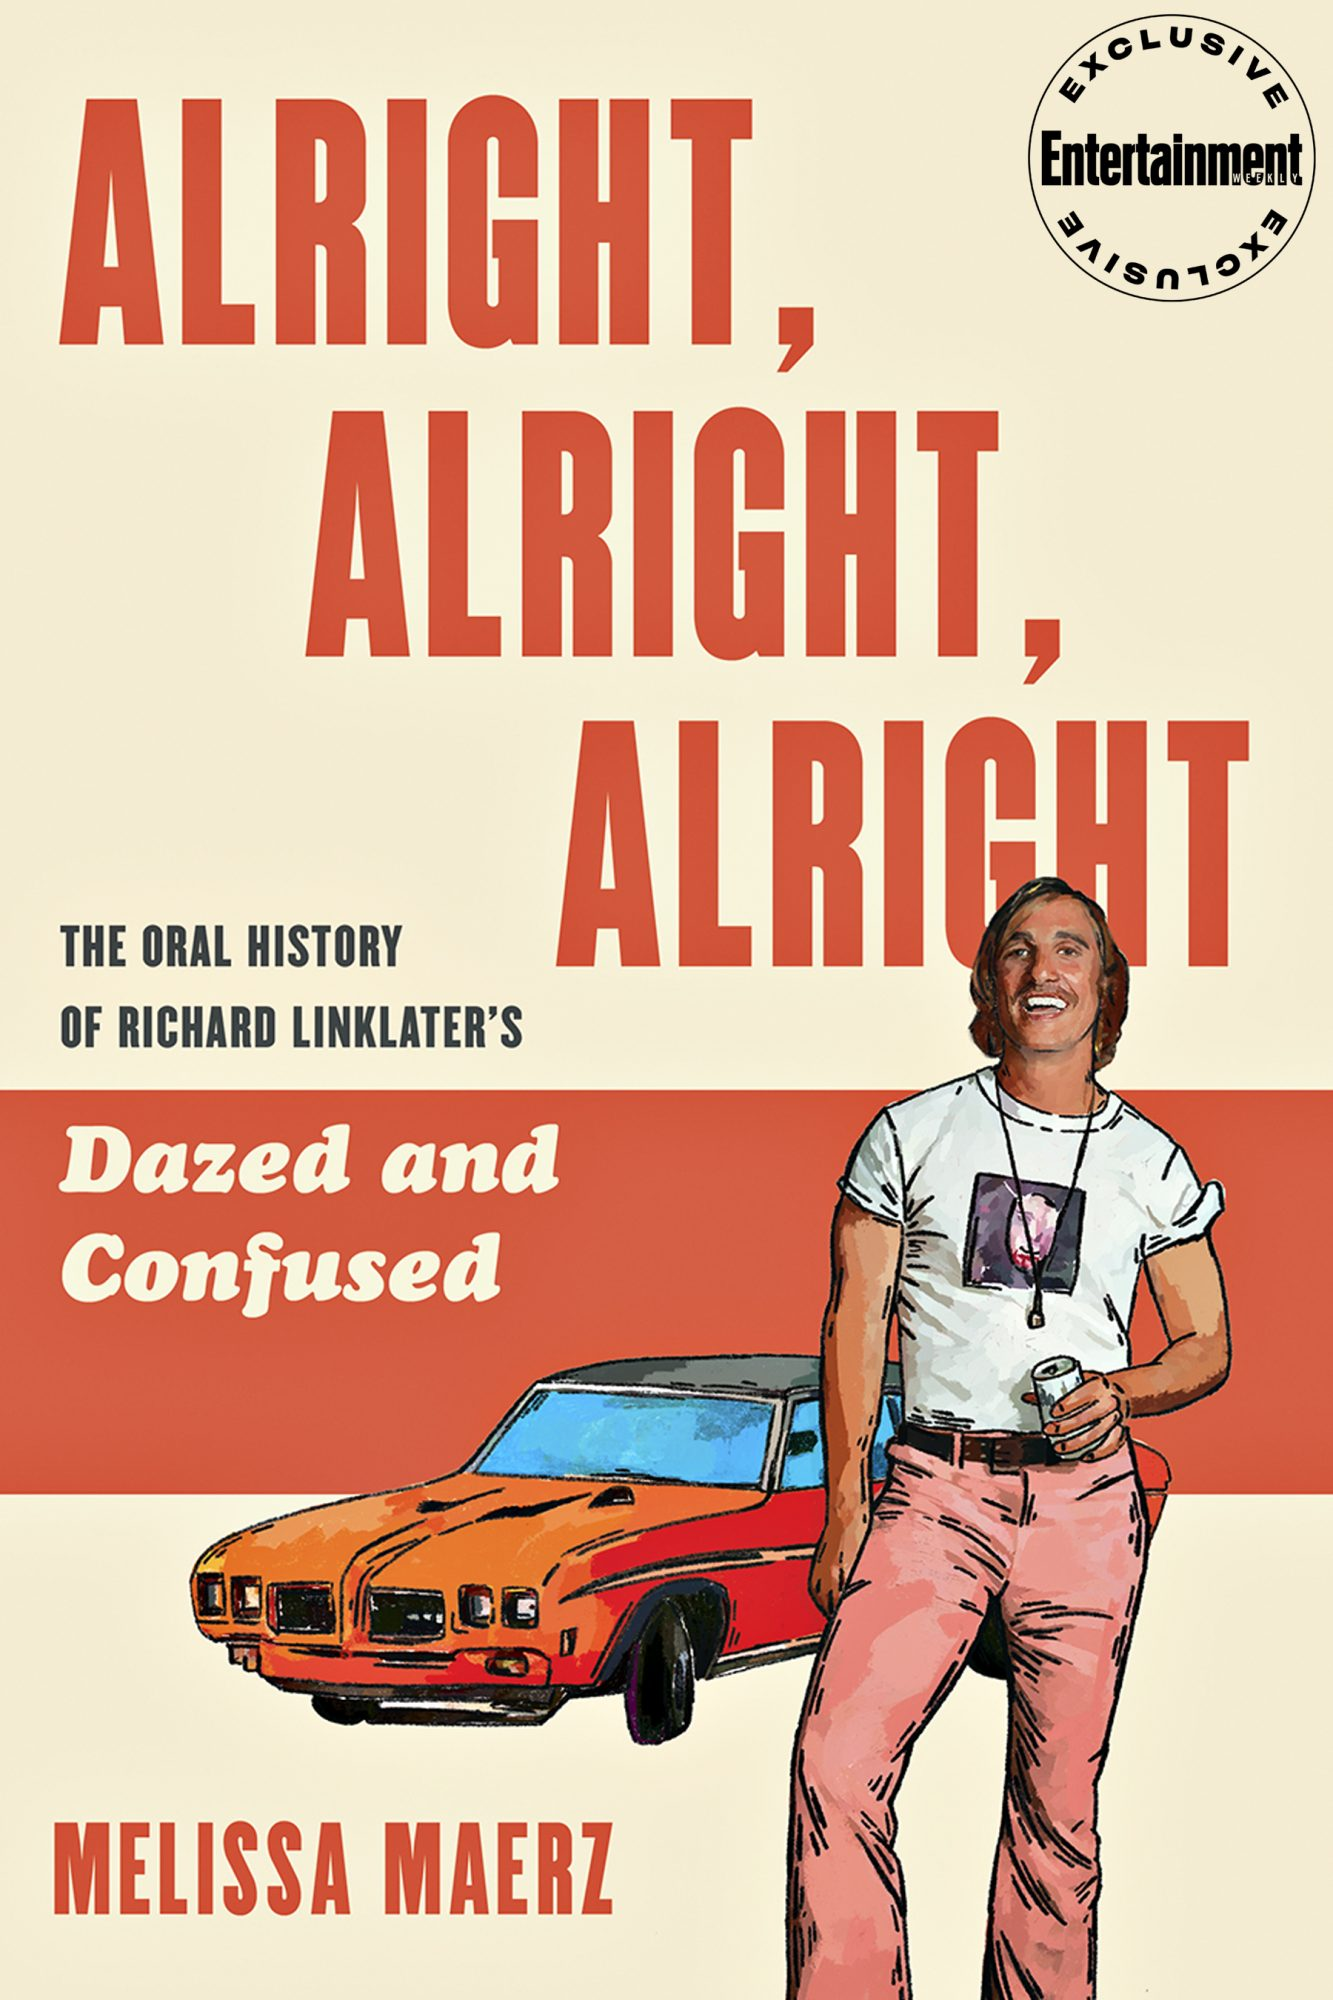 Alright, Alright, Alright: An Oral History of Richard Linklater's Dazed and Confused